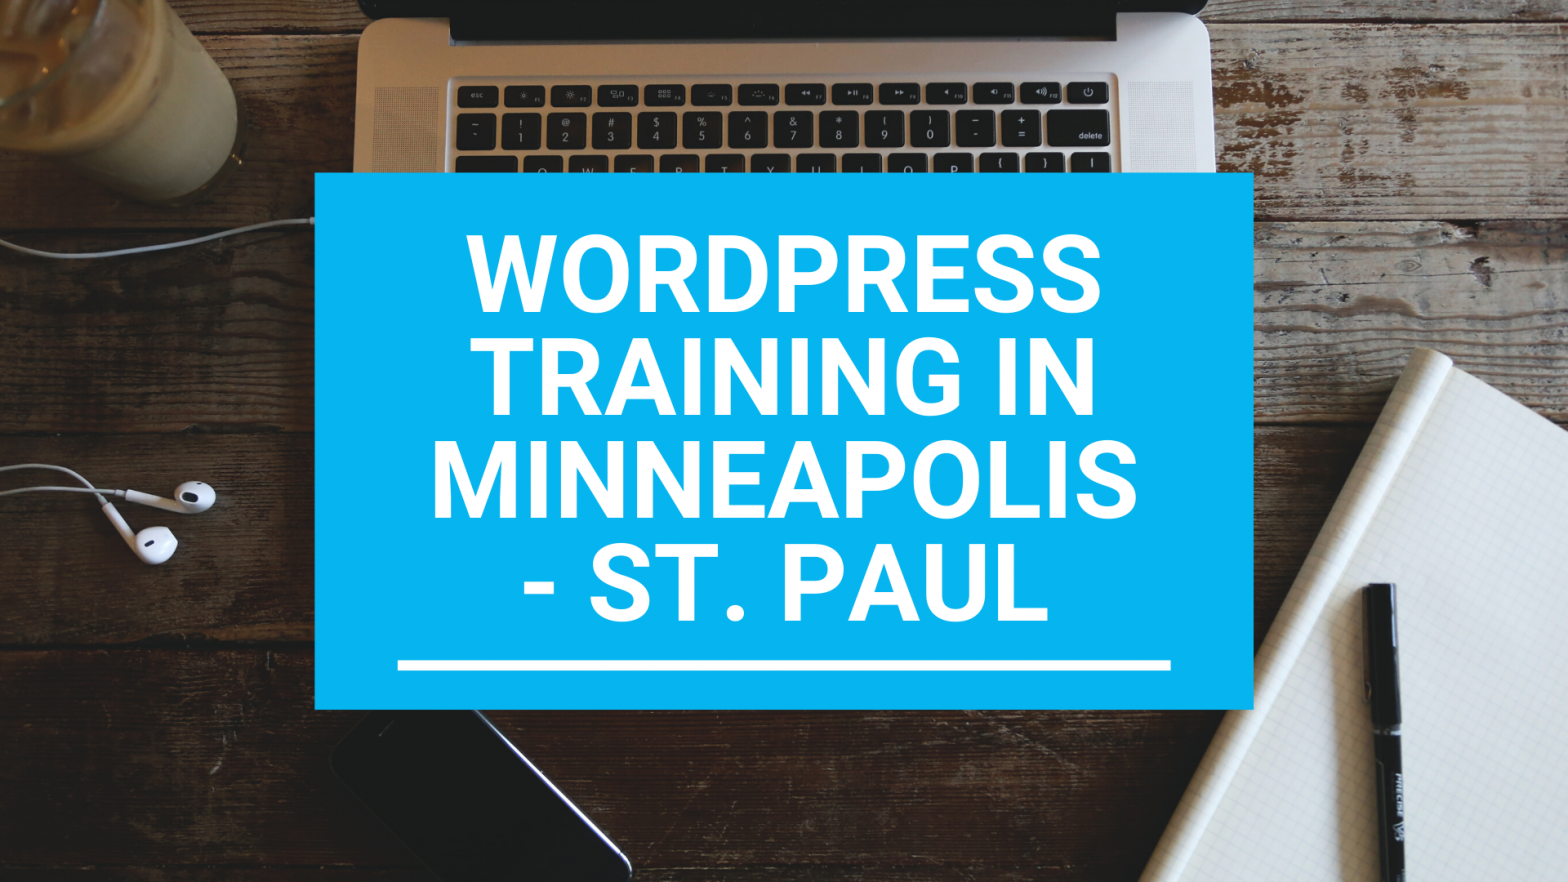 wordpress training minneapolis st paul mn